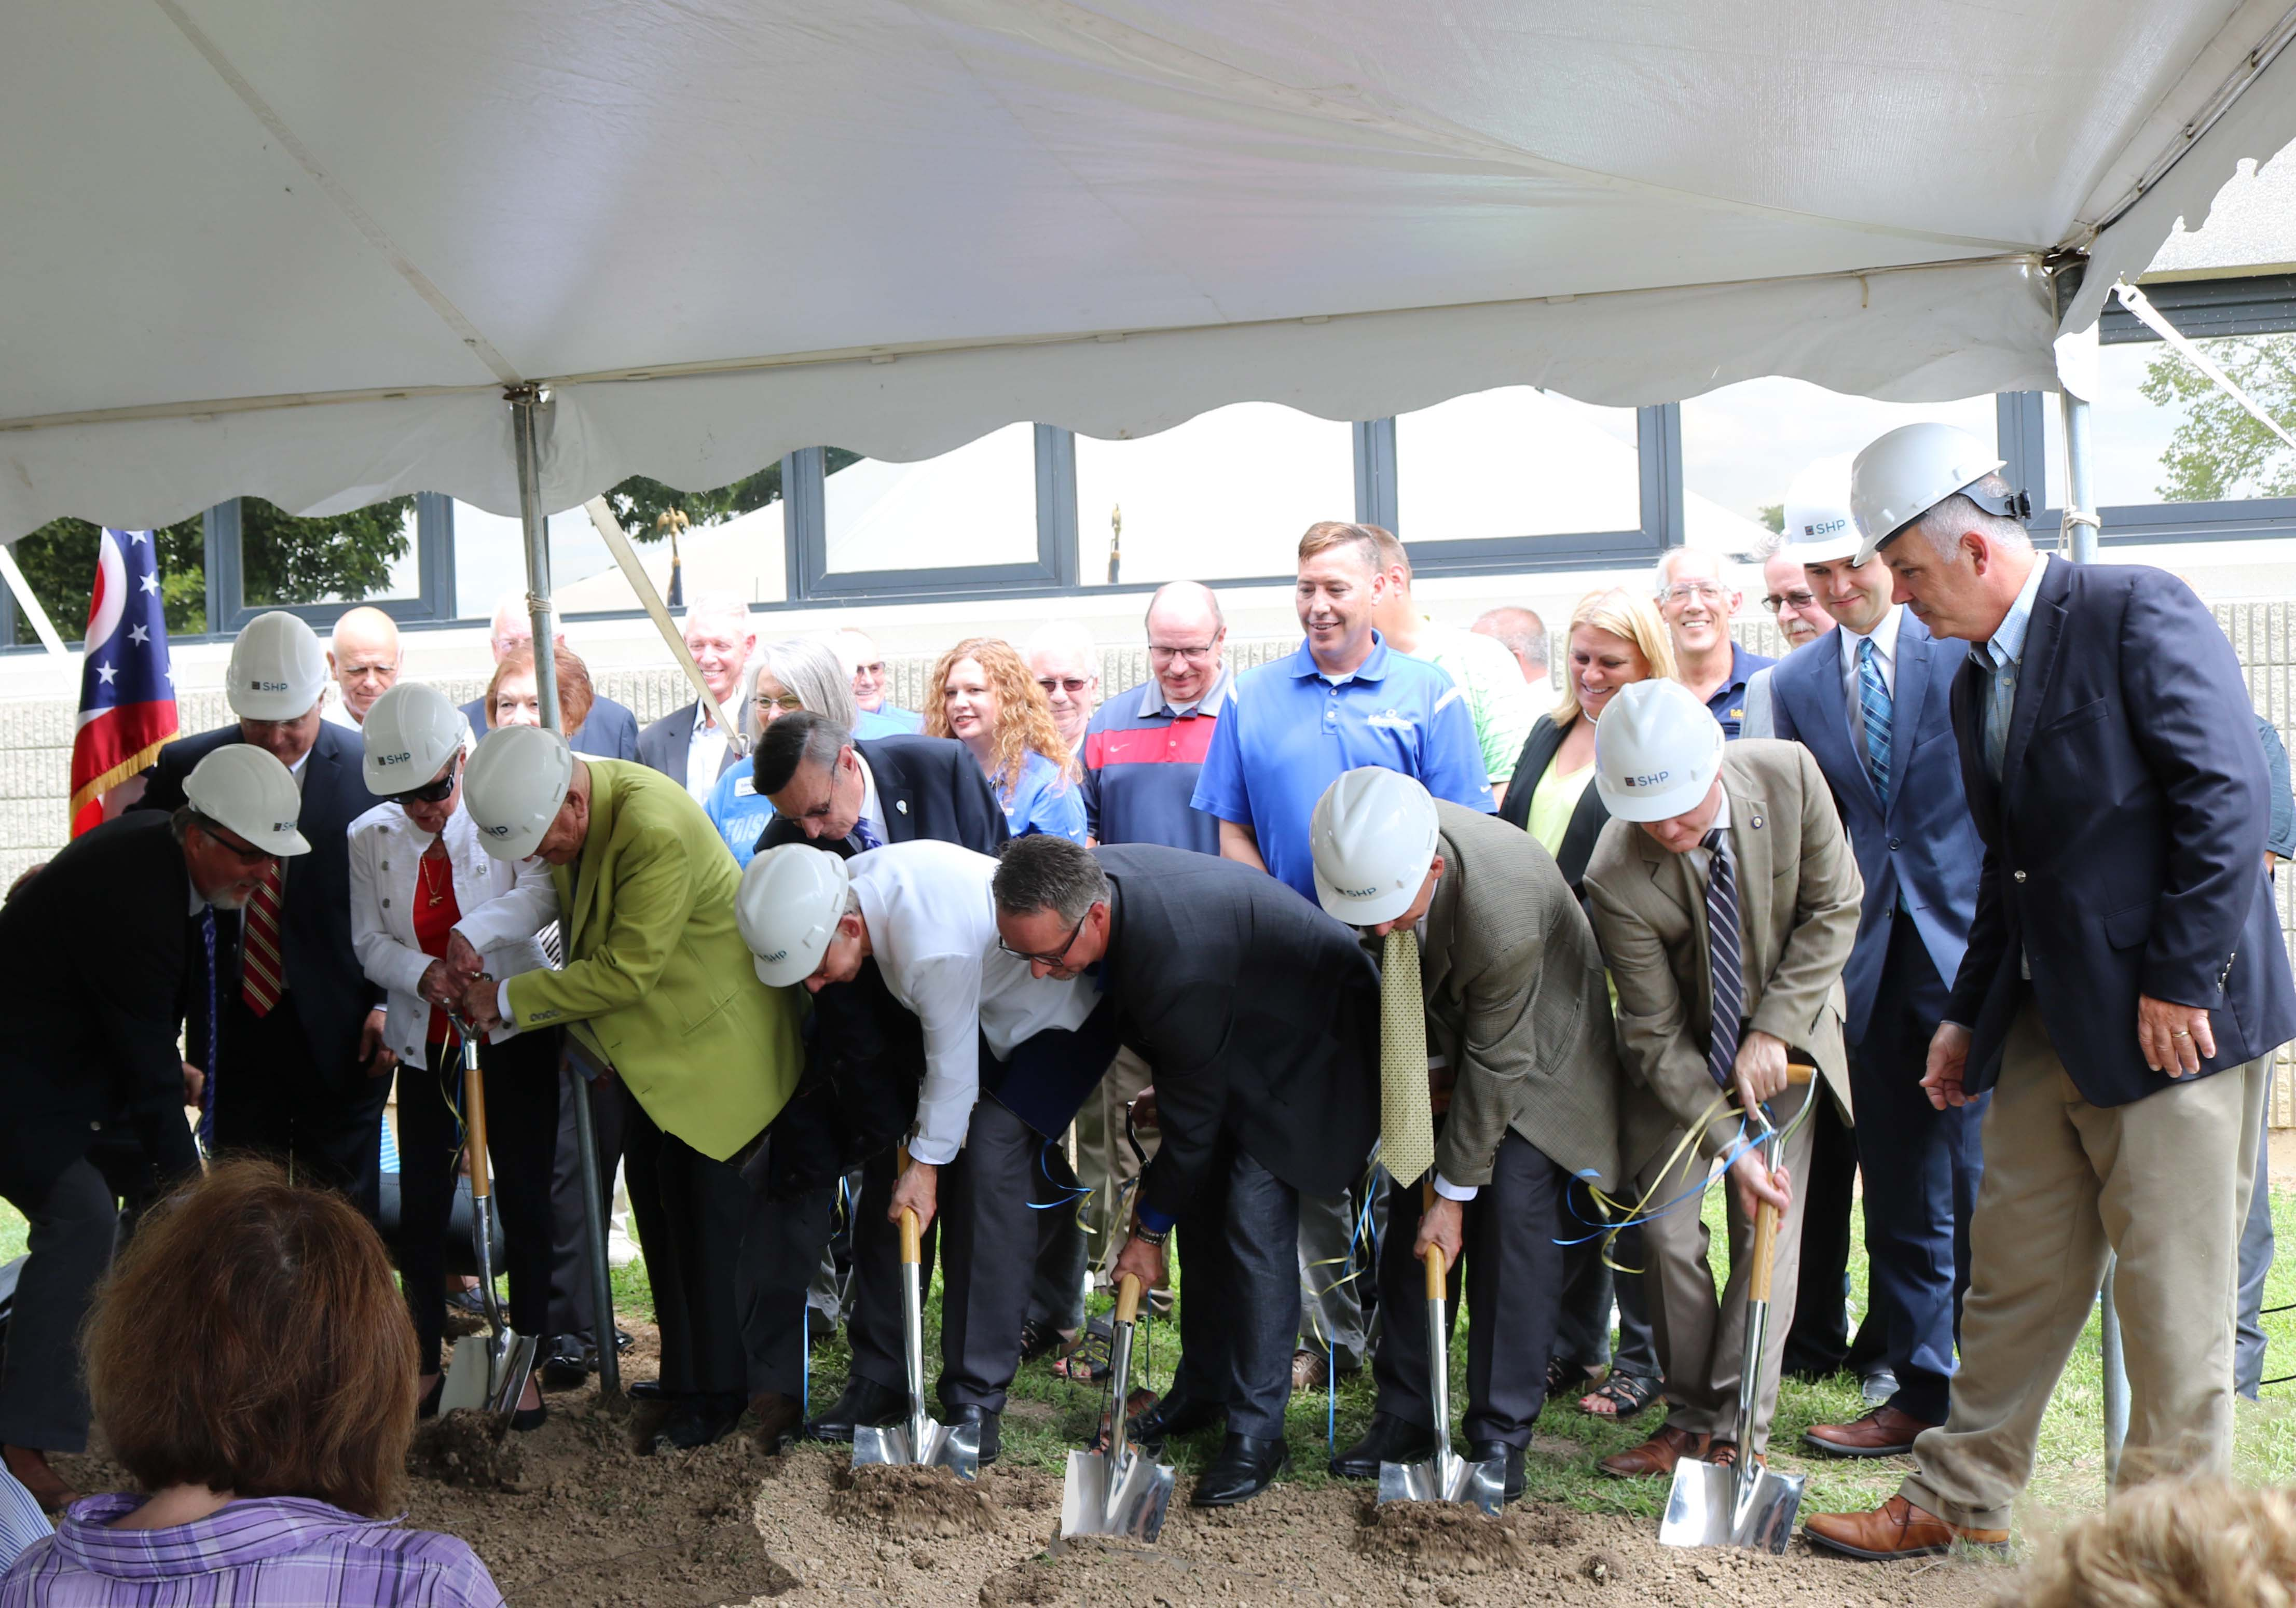 Robinson Student Career Center Ground Breaking Ceremony